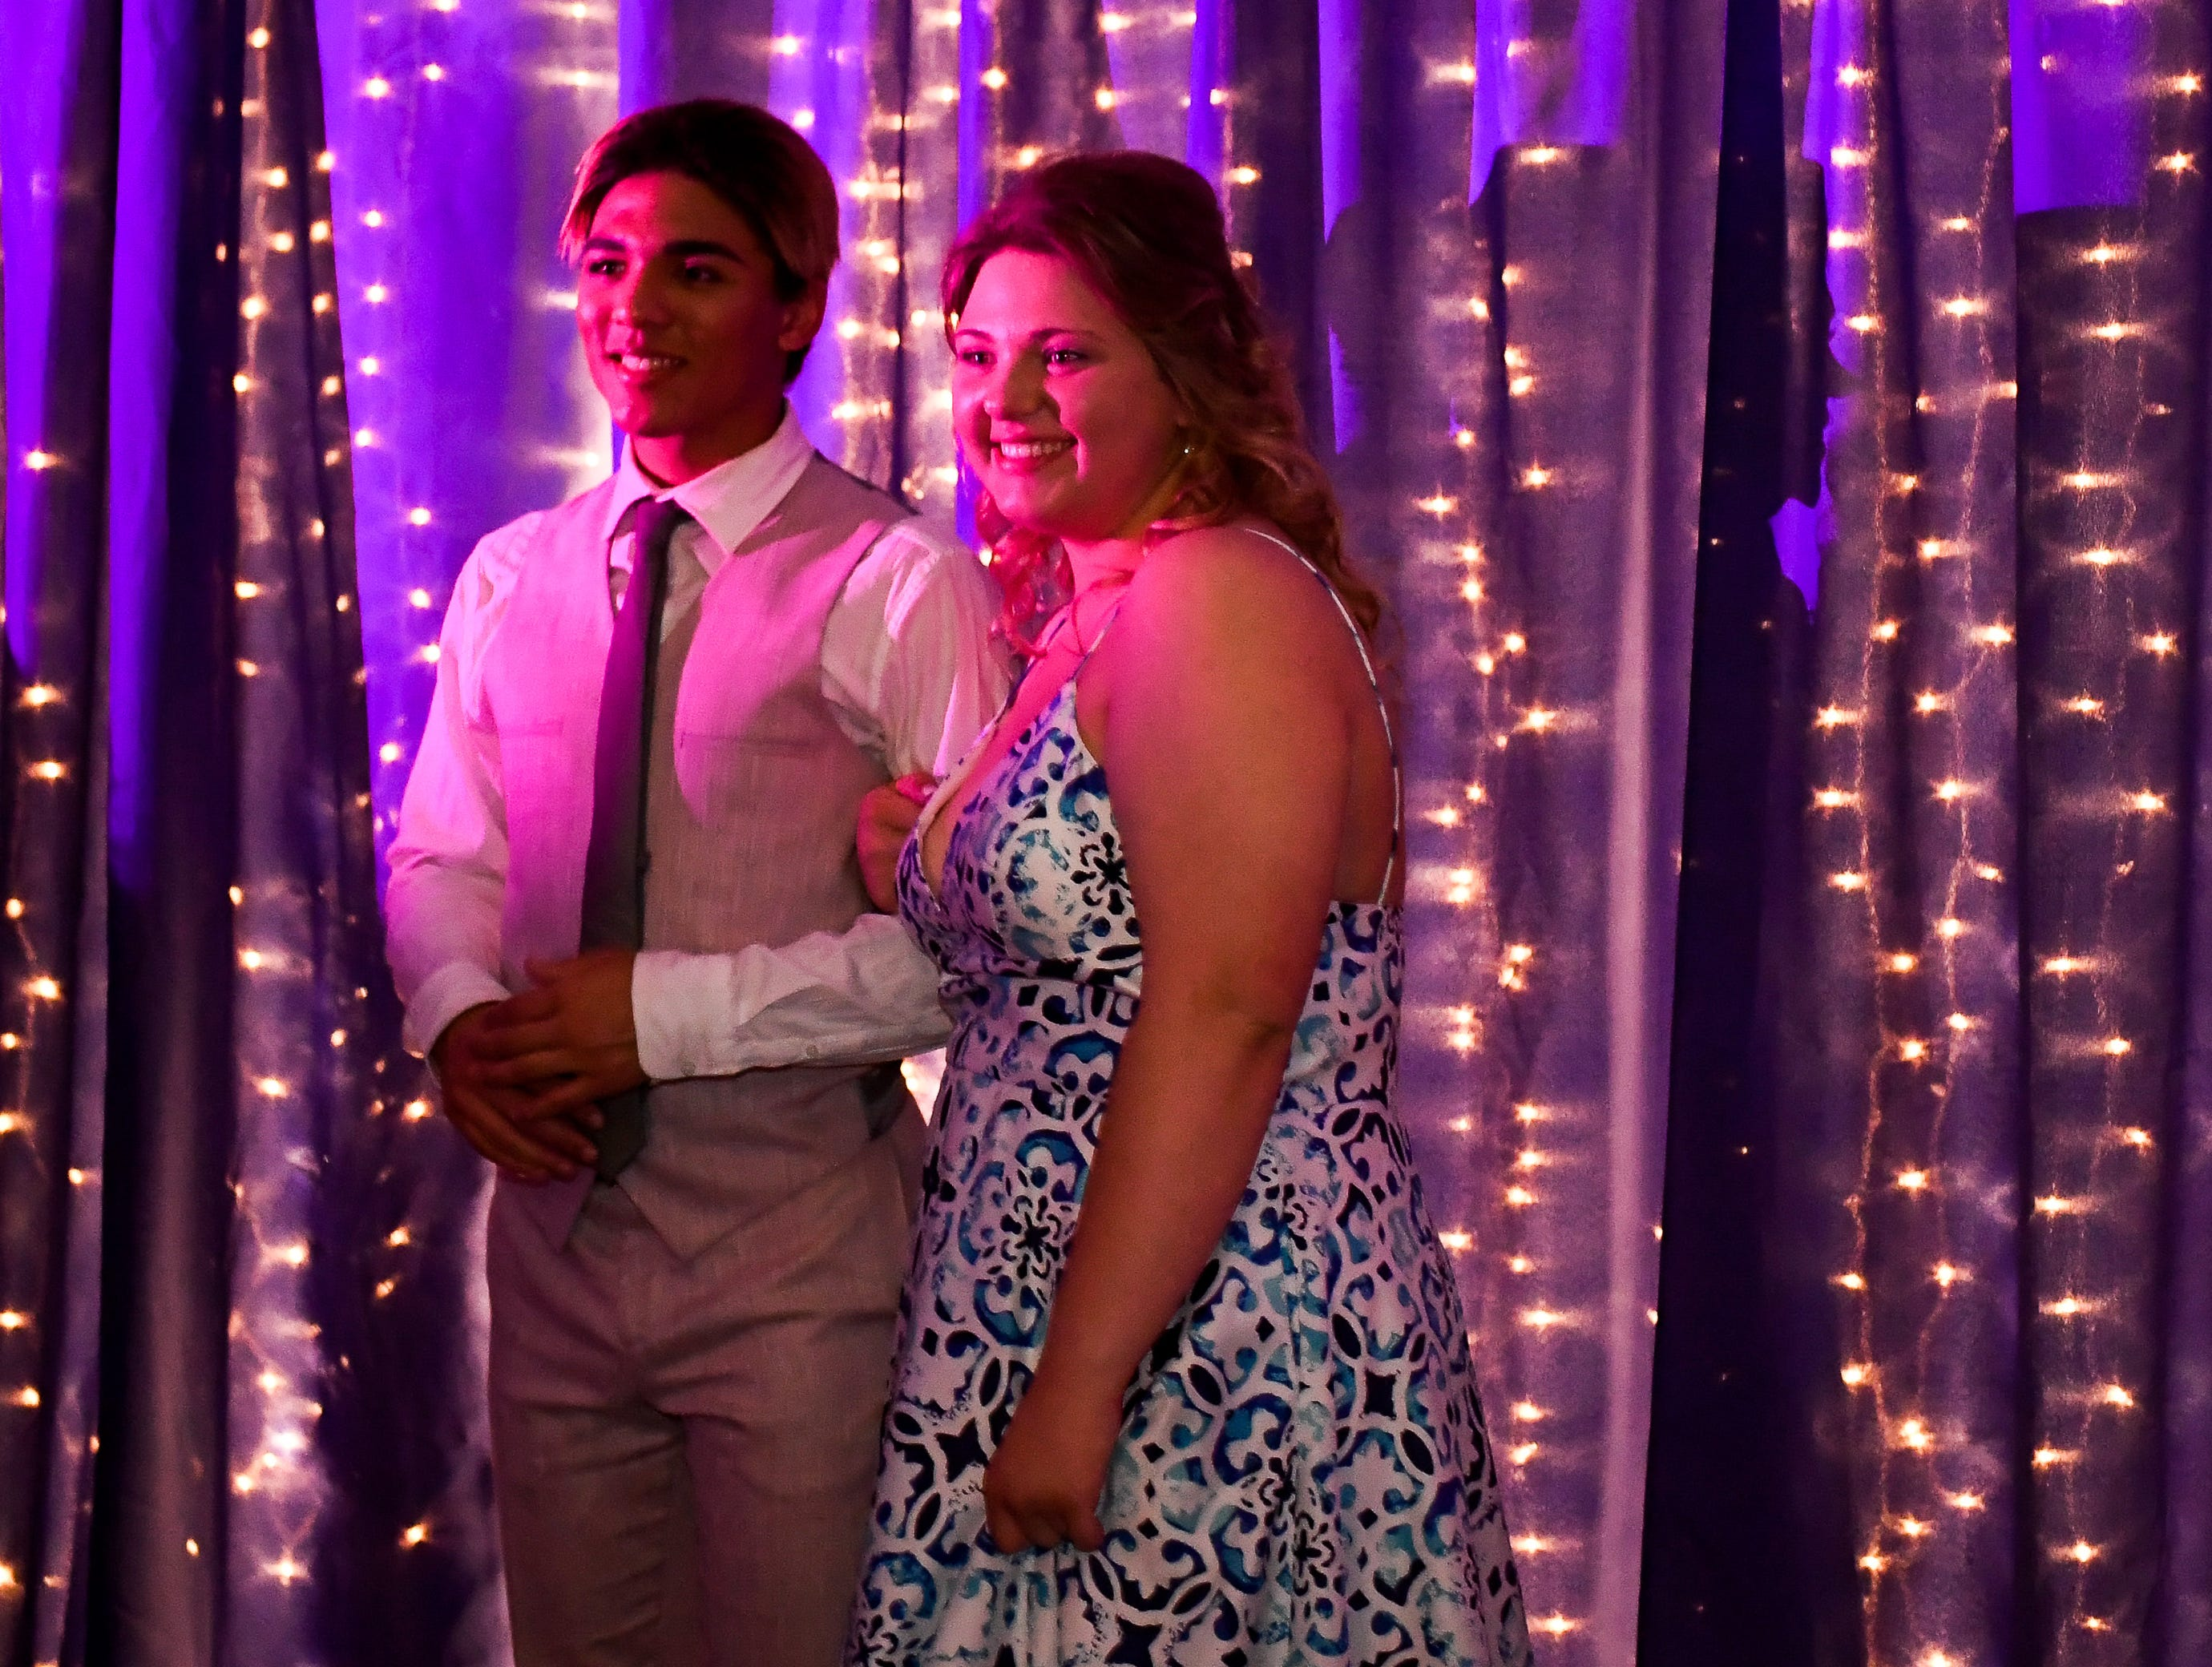 Nathan Schaefer and Ashlynn Downs get their picture taken at the Boonville High School prom, held at the Old National Events Center Plaza Saturday, April 27, 2019.